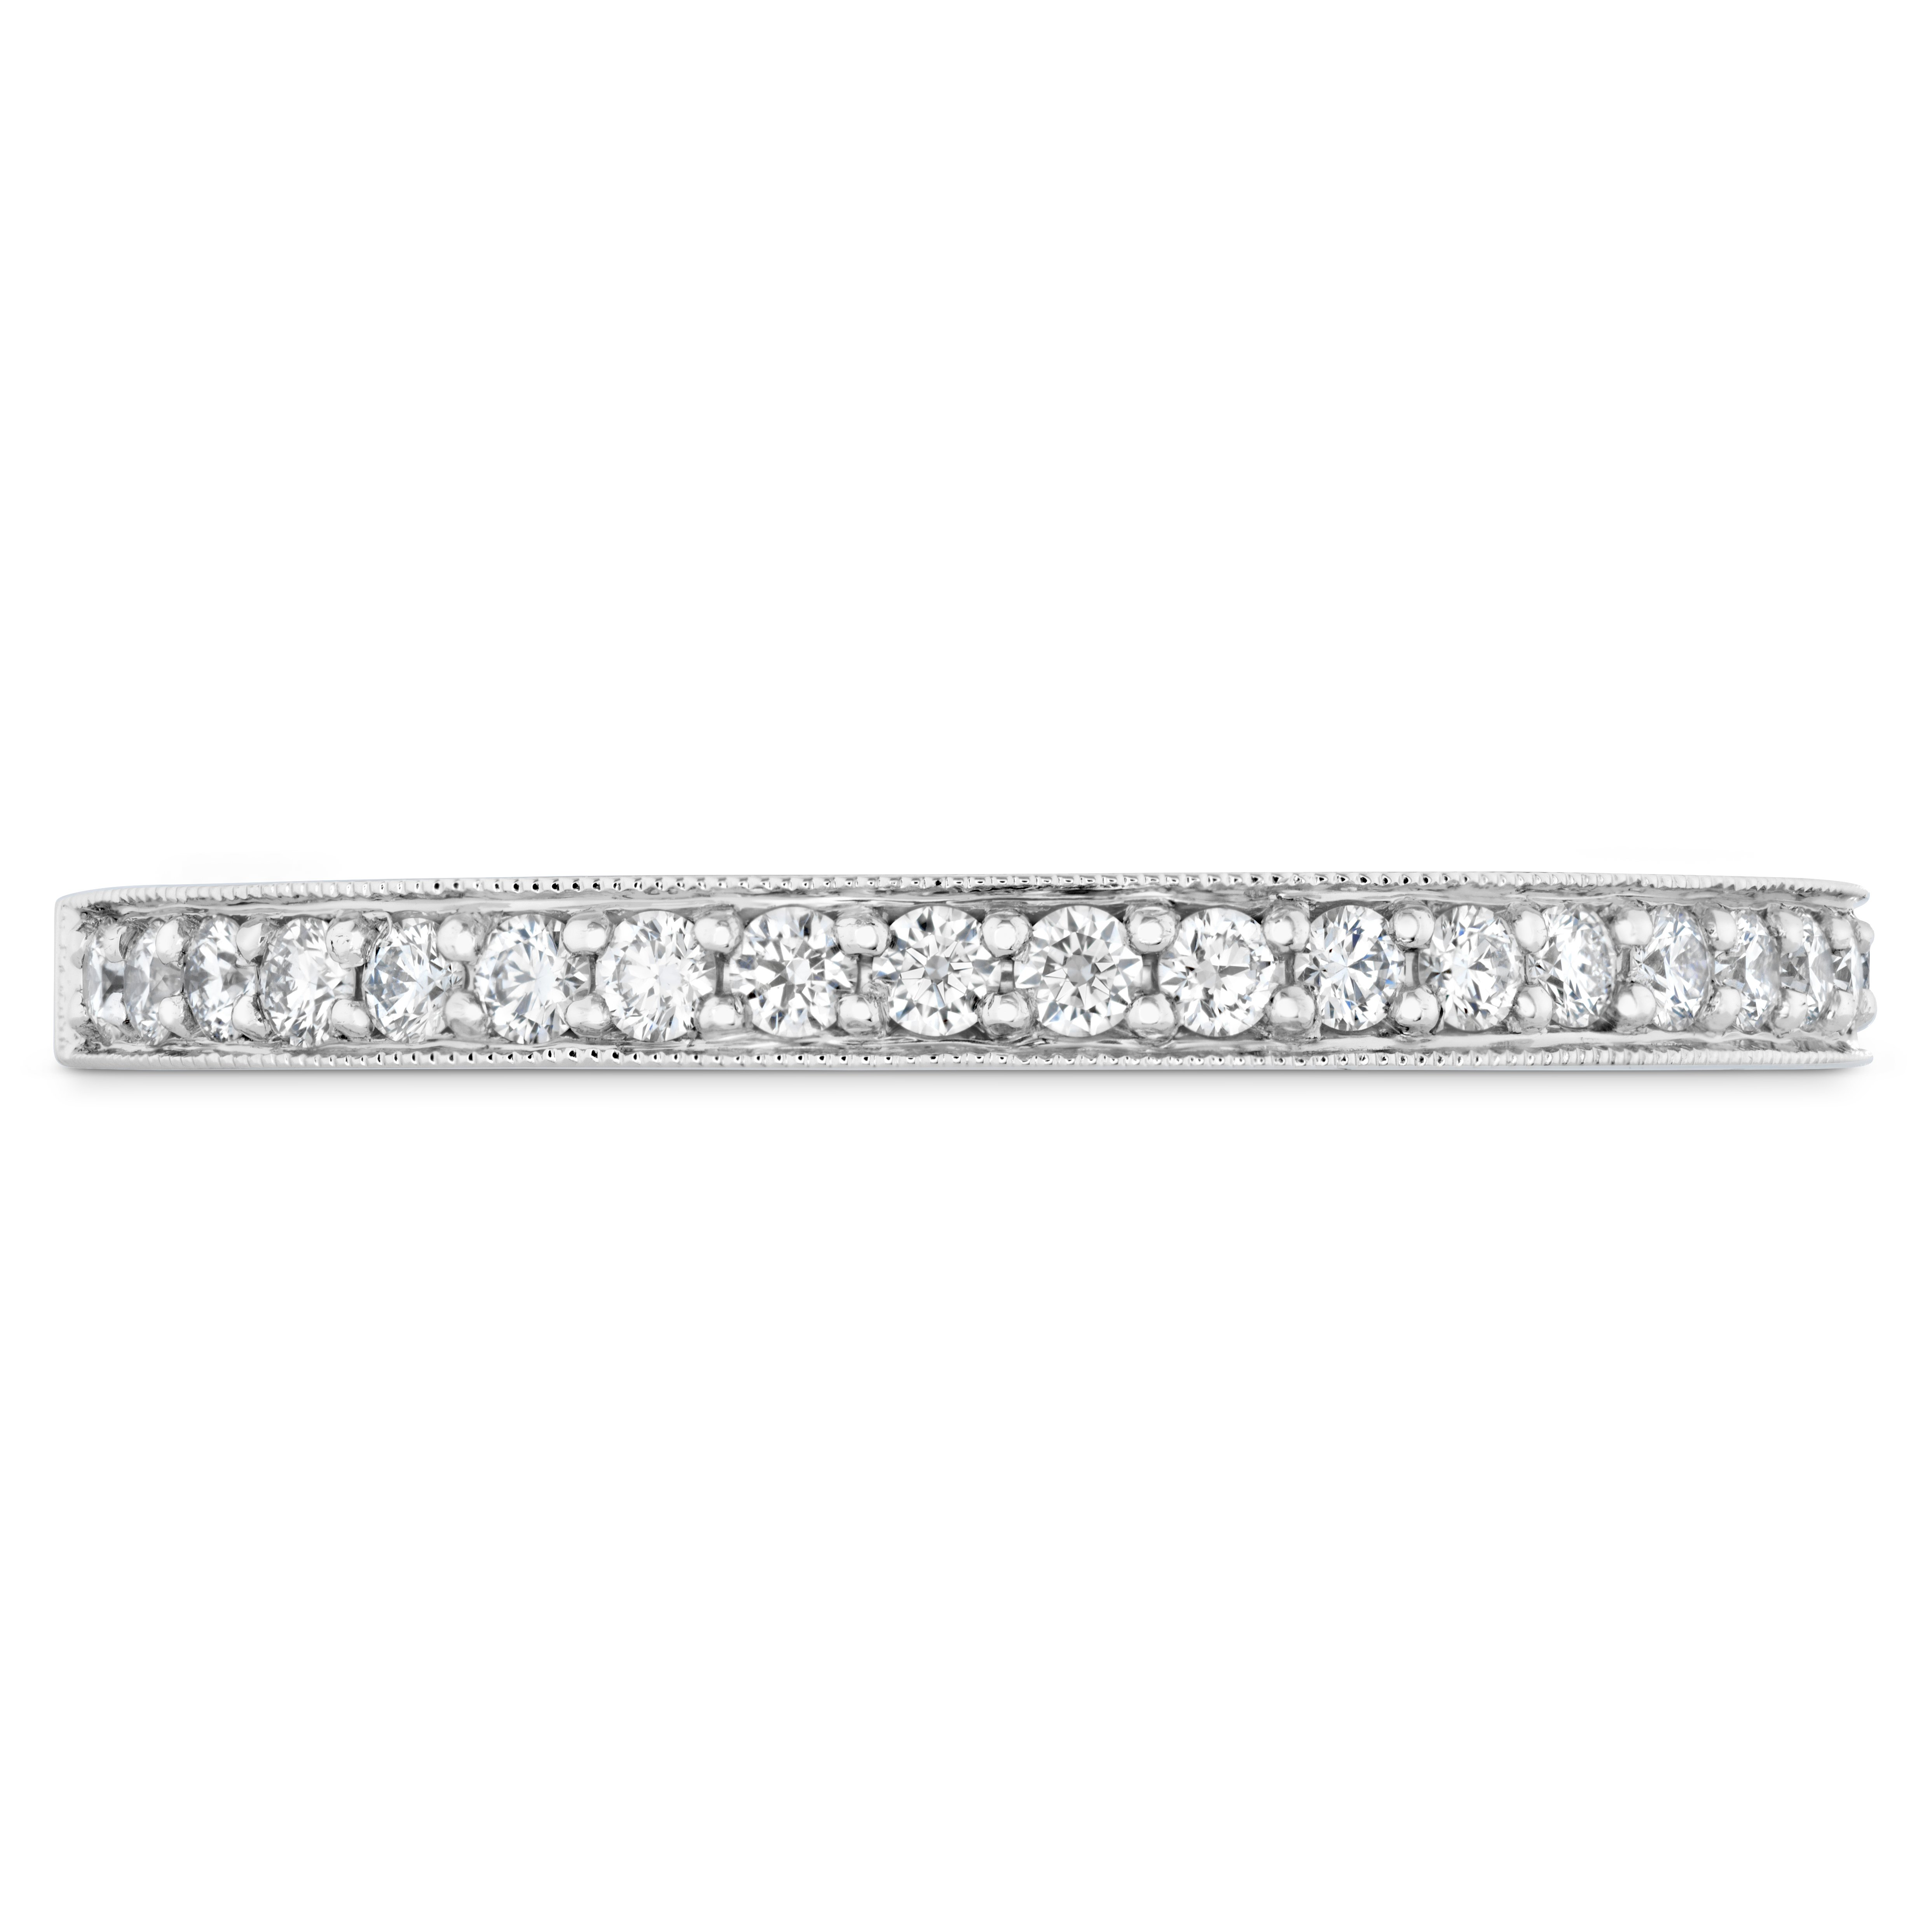 milgrain ring wedding hand engraved band eternity rings in diamond with white gold designs top side